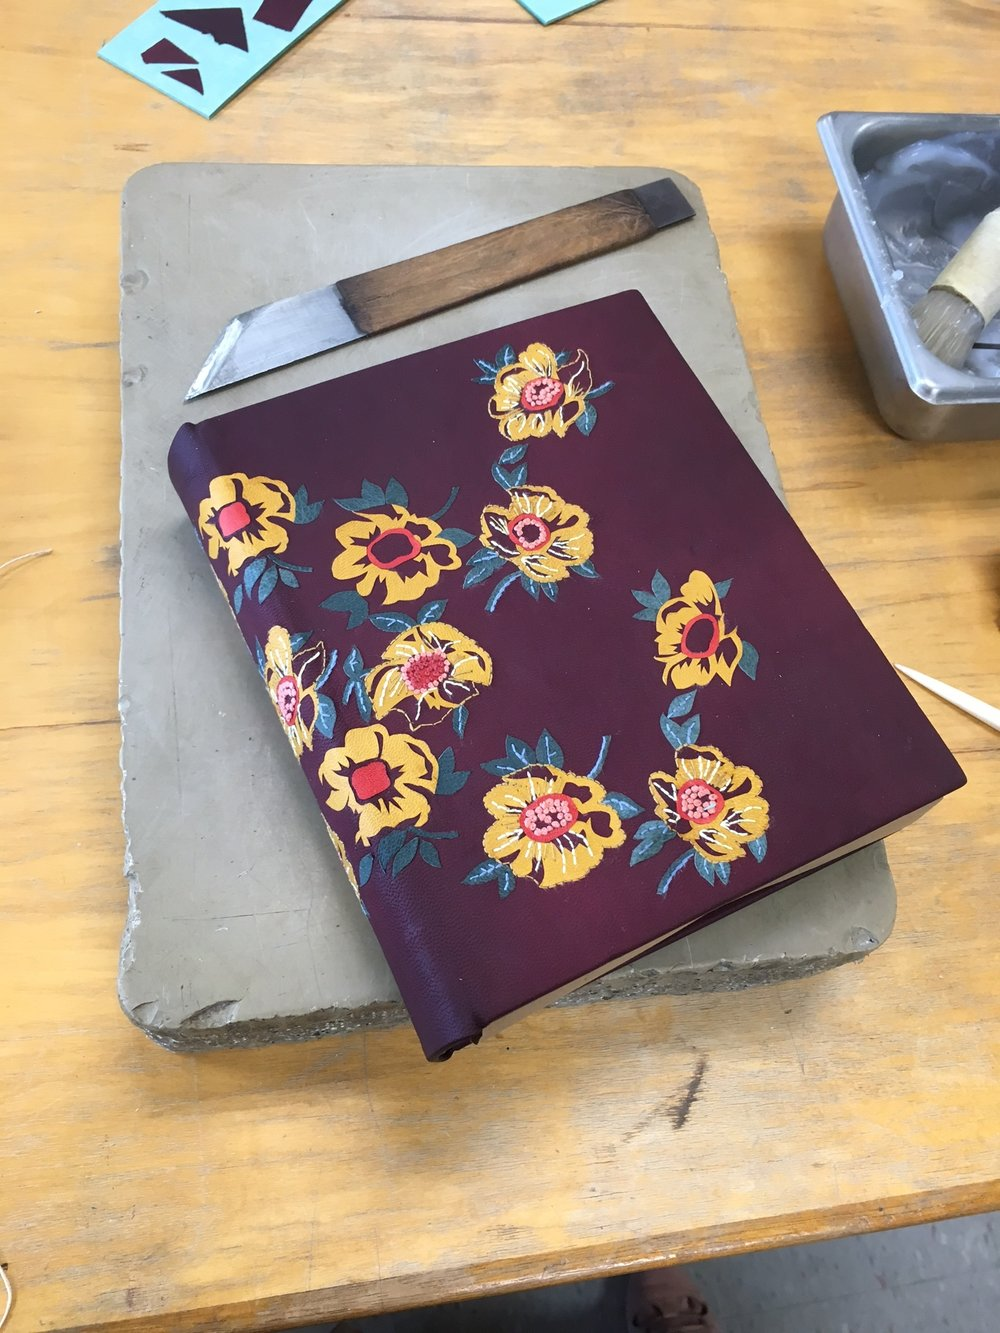 The binding just after being covered. Still wet and very fragile!